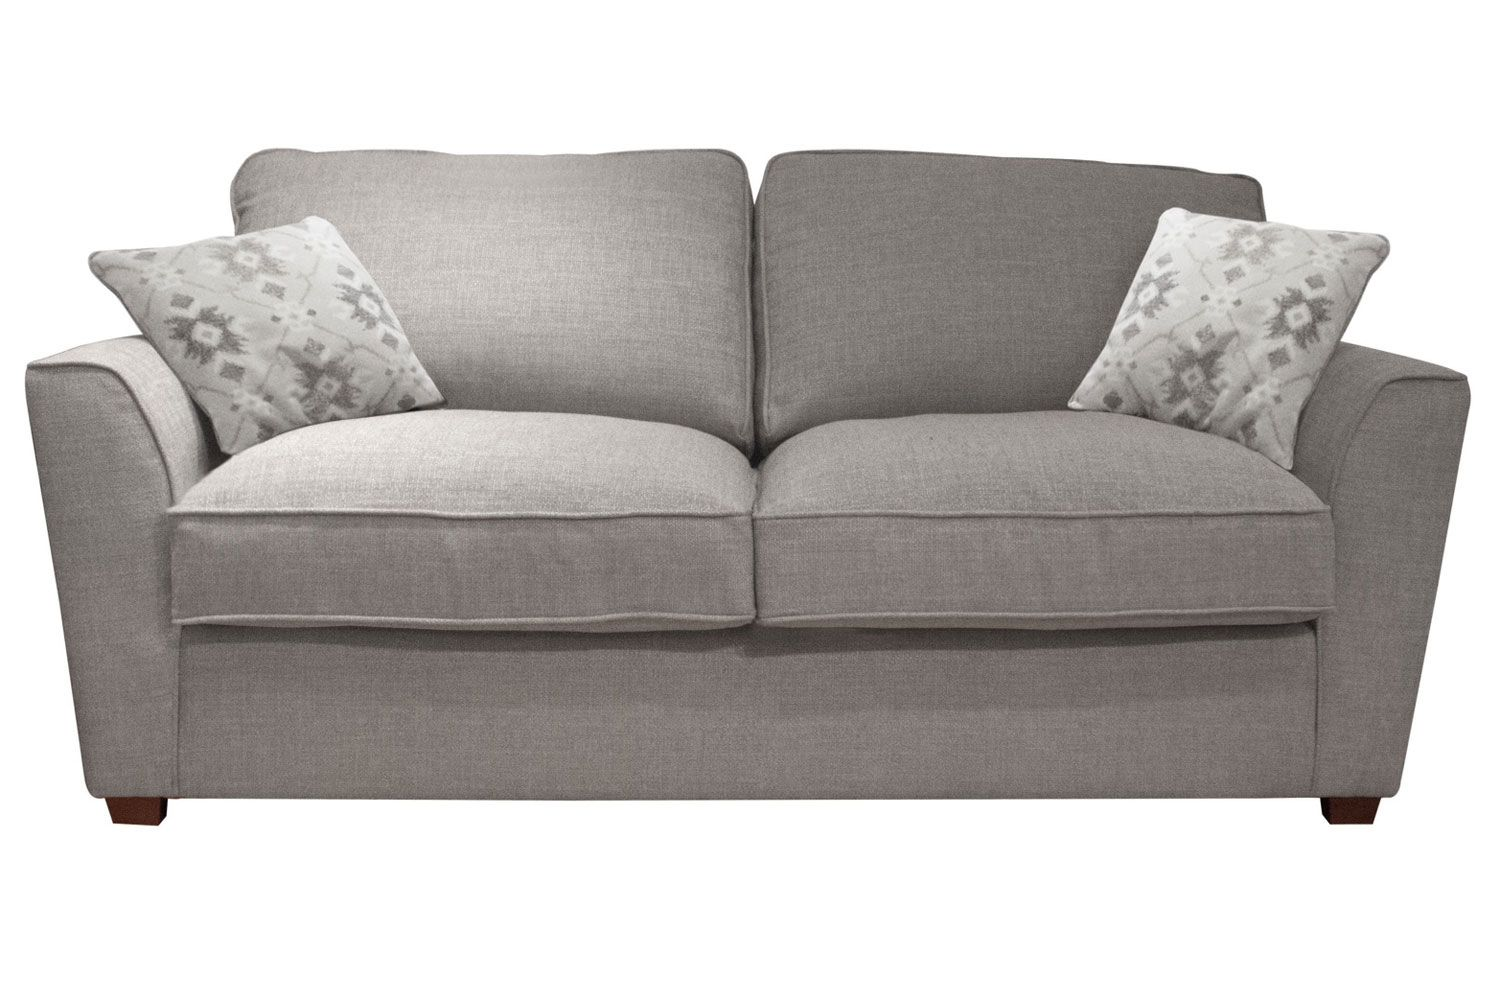 Sofa Covers Online Dubai Sofas Made To Order Fantasia Corner Fabric Shop At Harvey